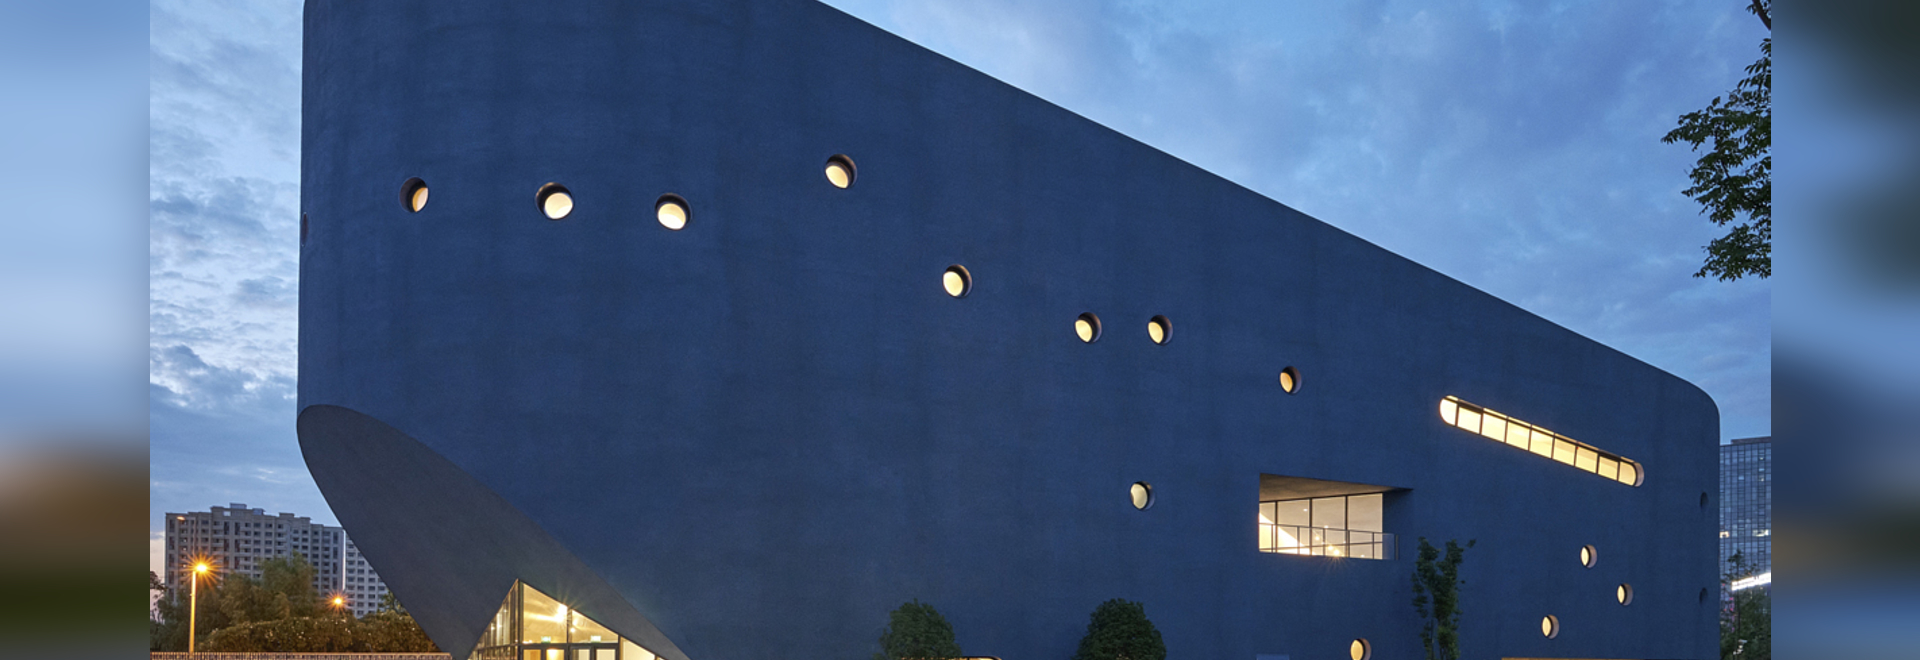 Pinghe Bibliotheater / OPEN Architecture